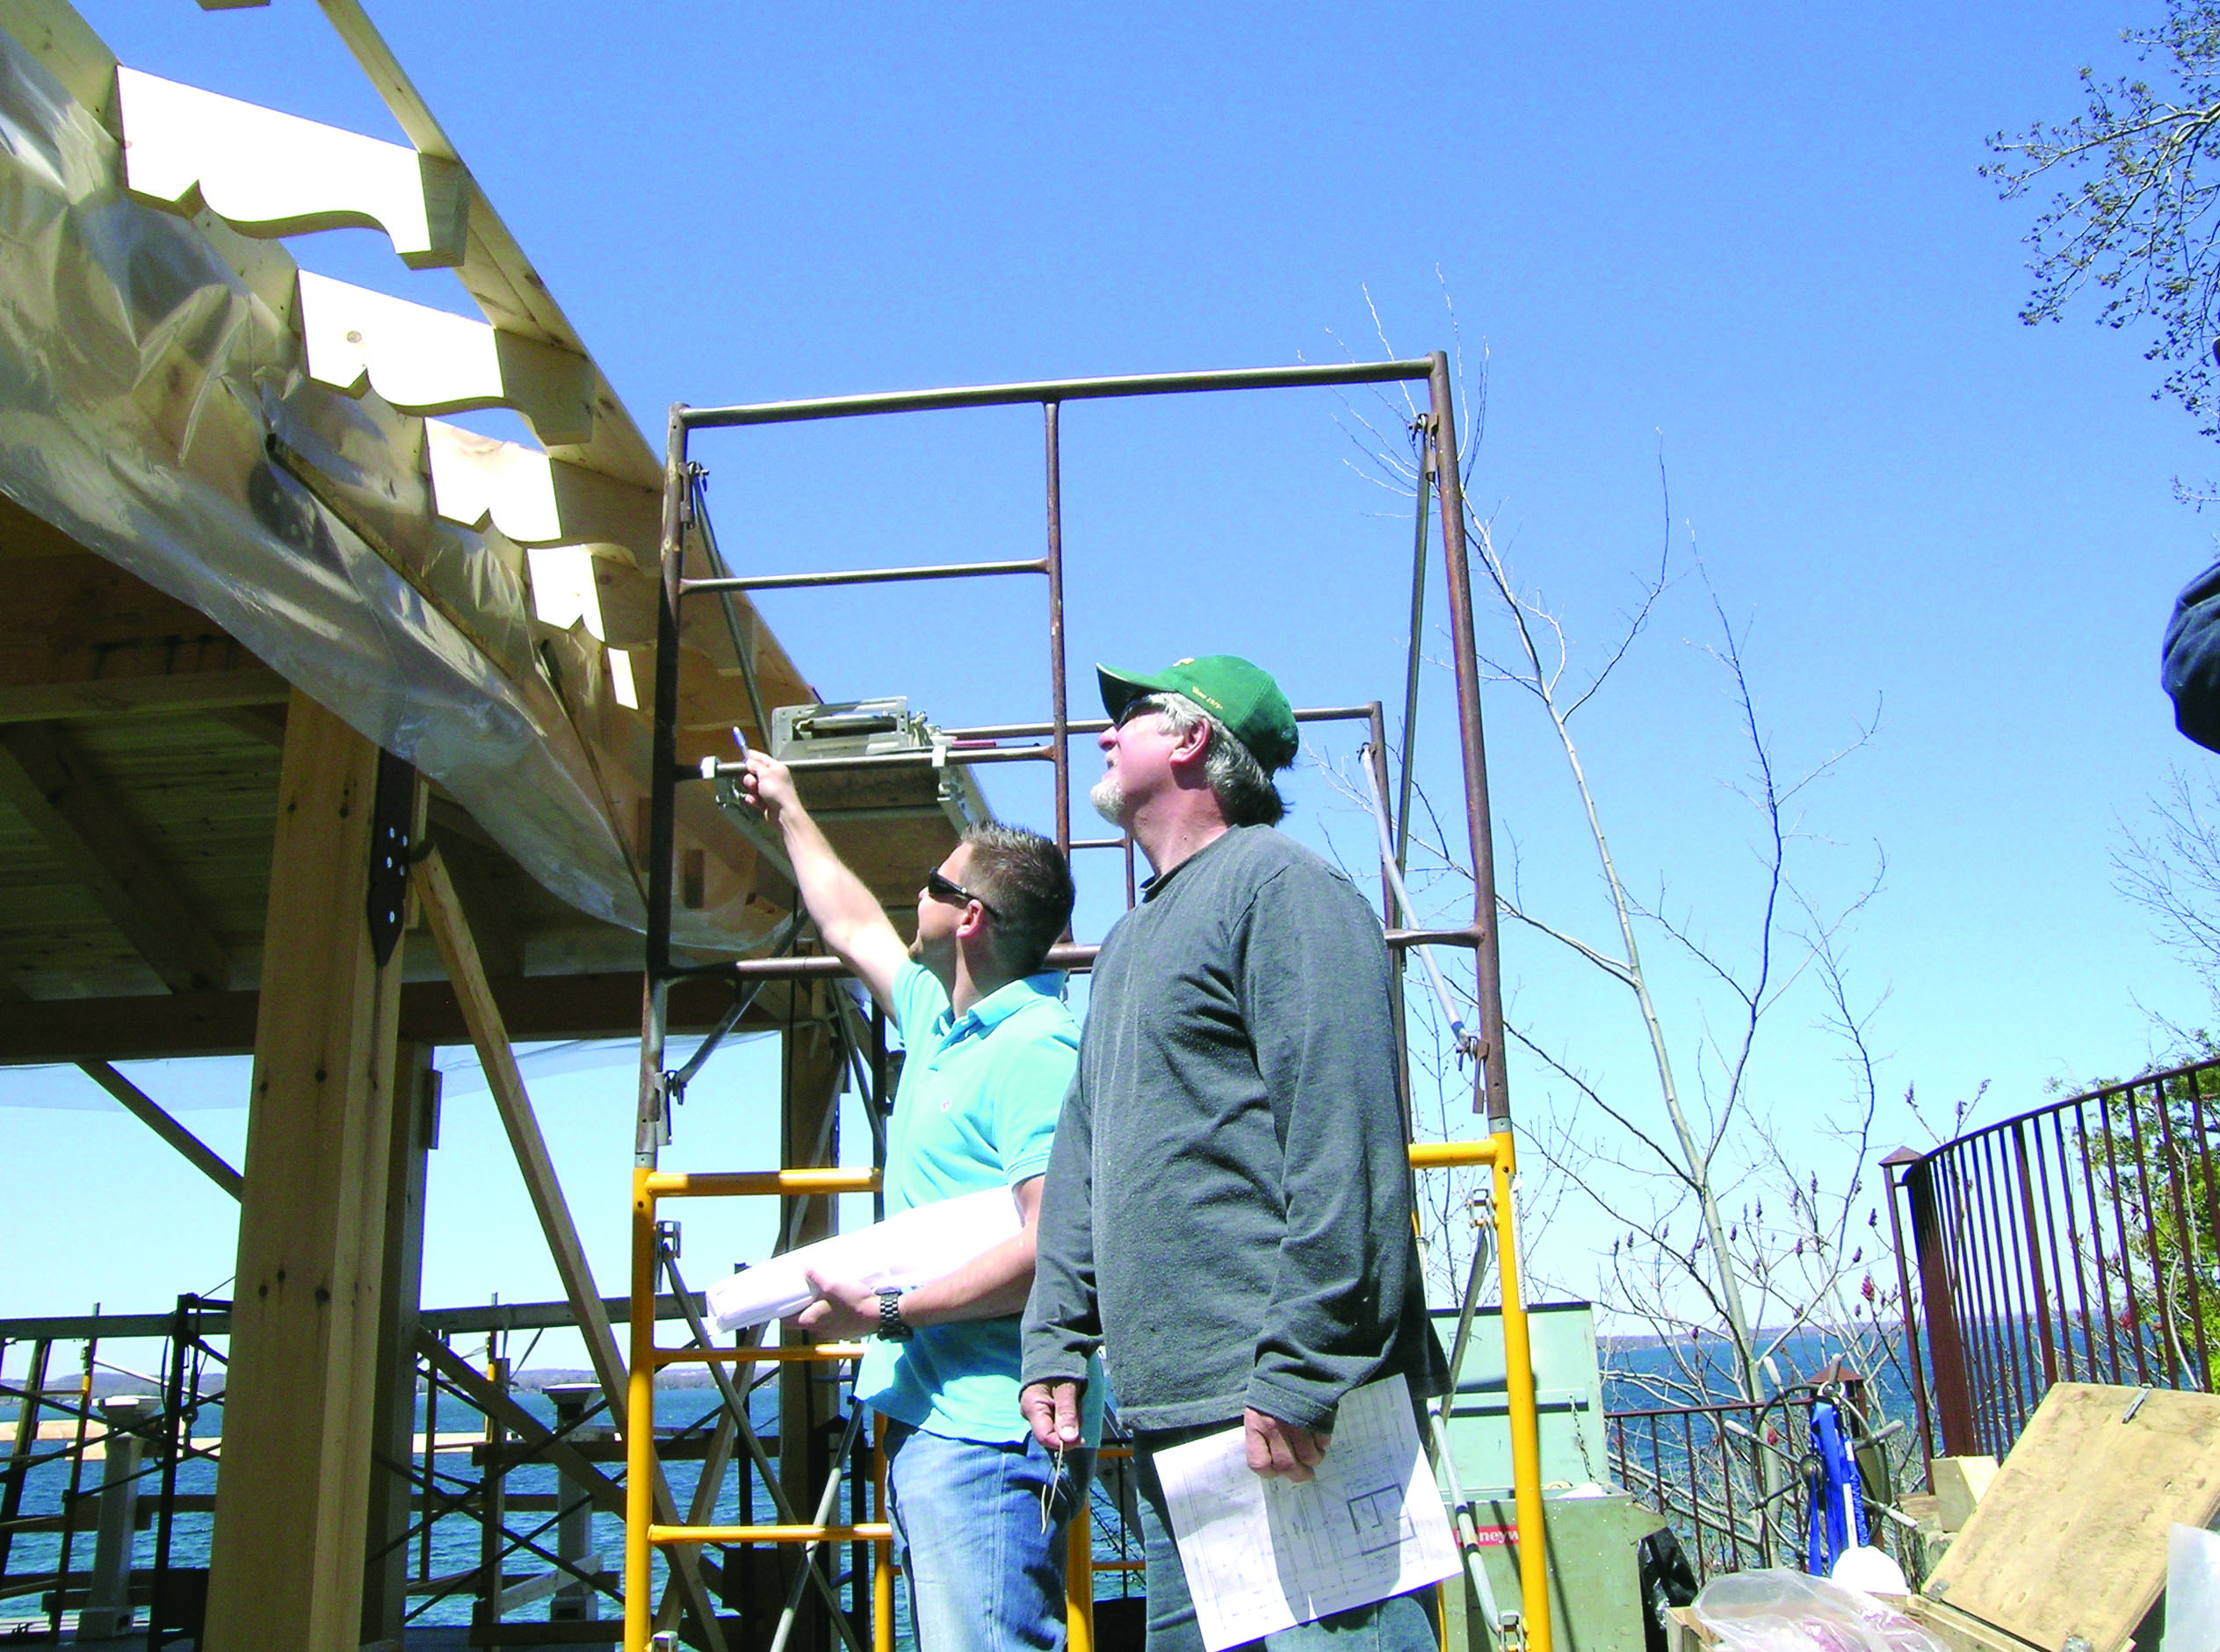 Custom Home Builders - How to Choose the Right Experts to Build Your Timber Frame Home